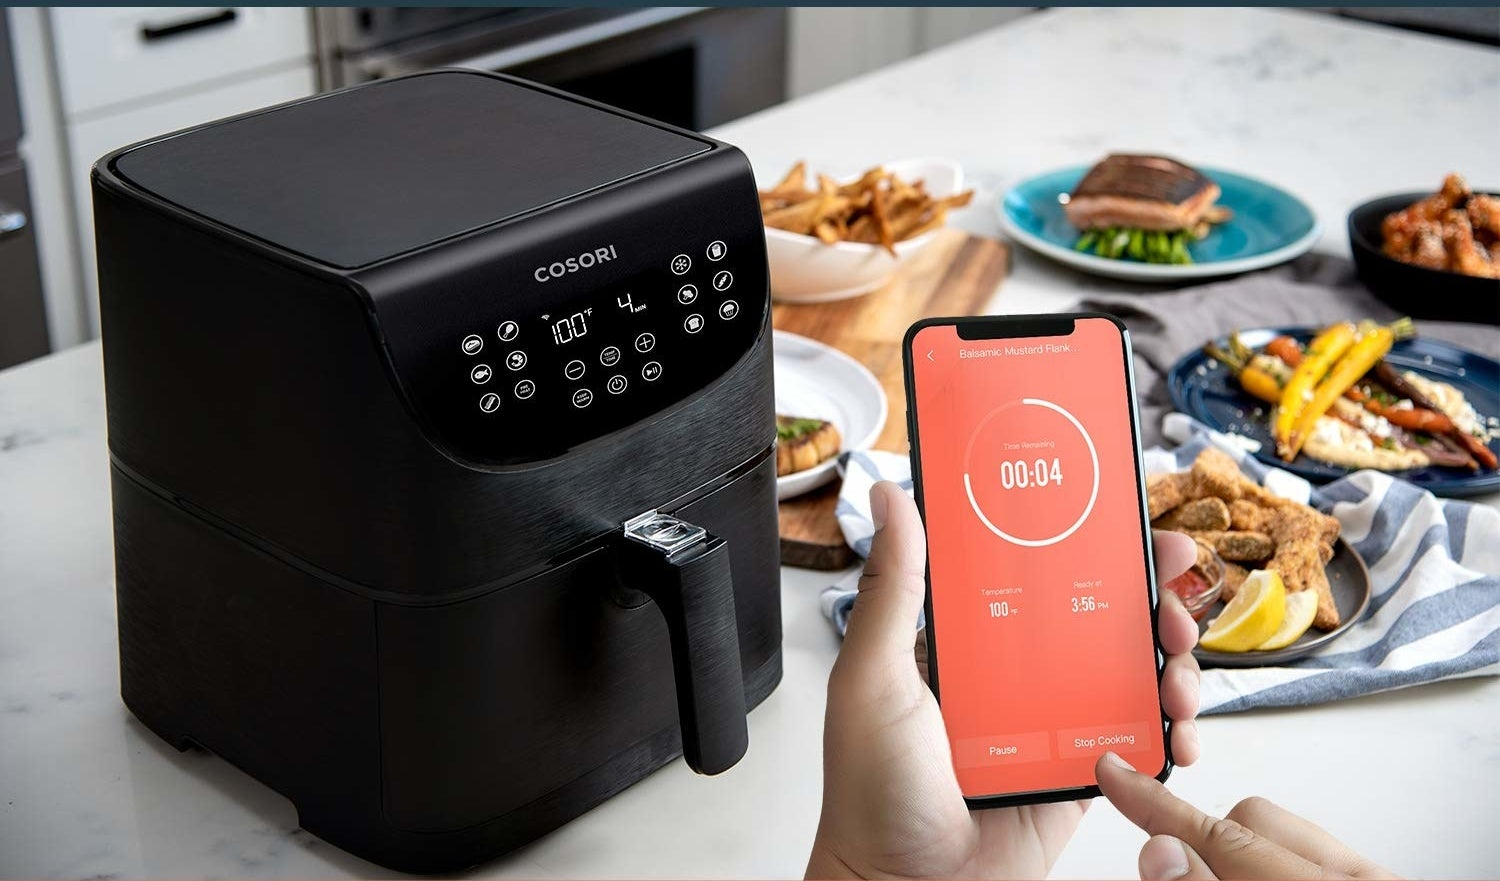 Model using smartphone app connected to Cosori air fryer